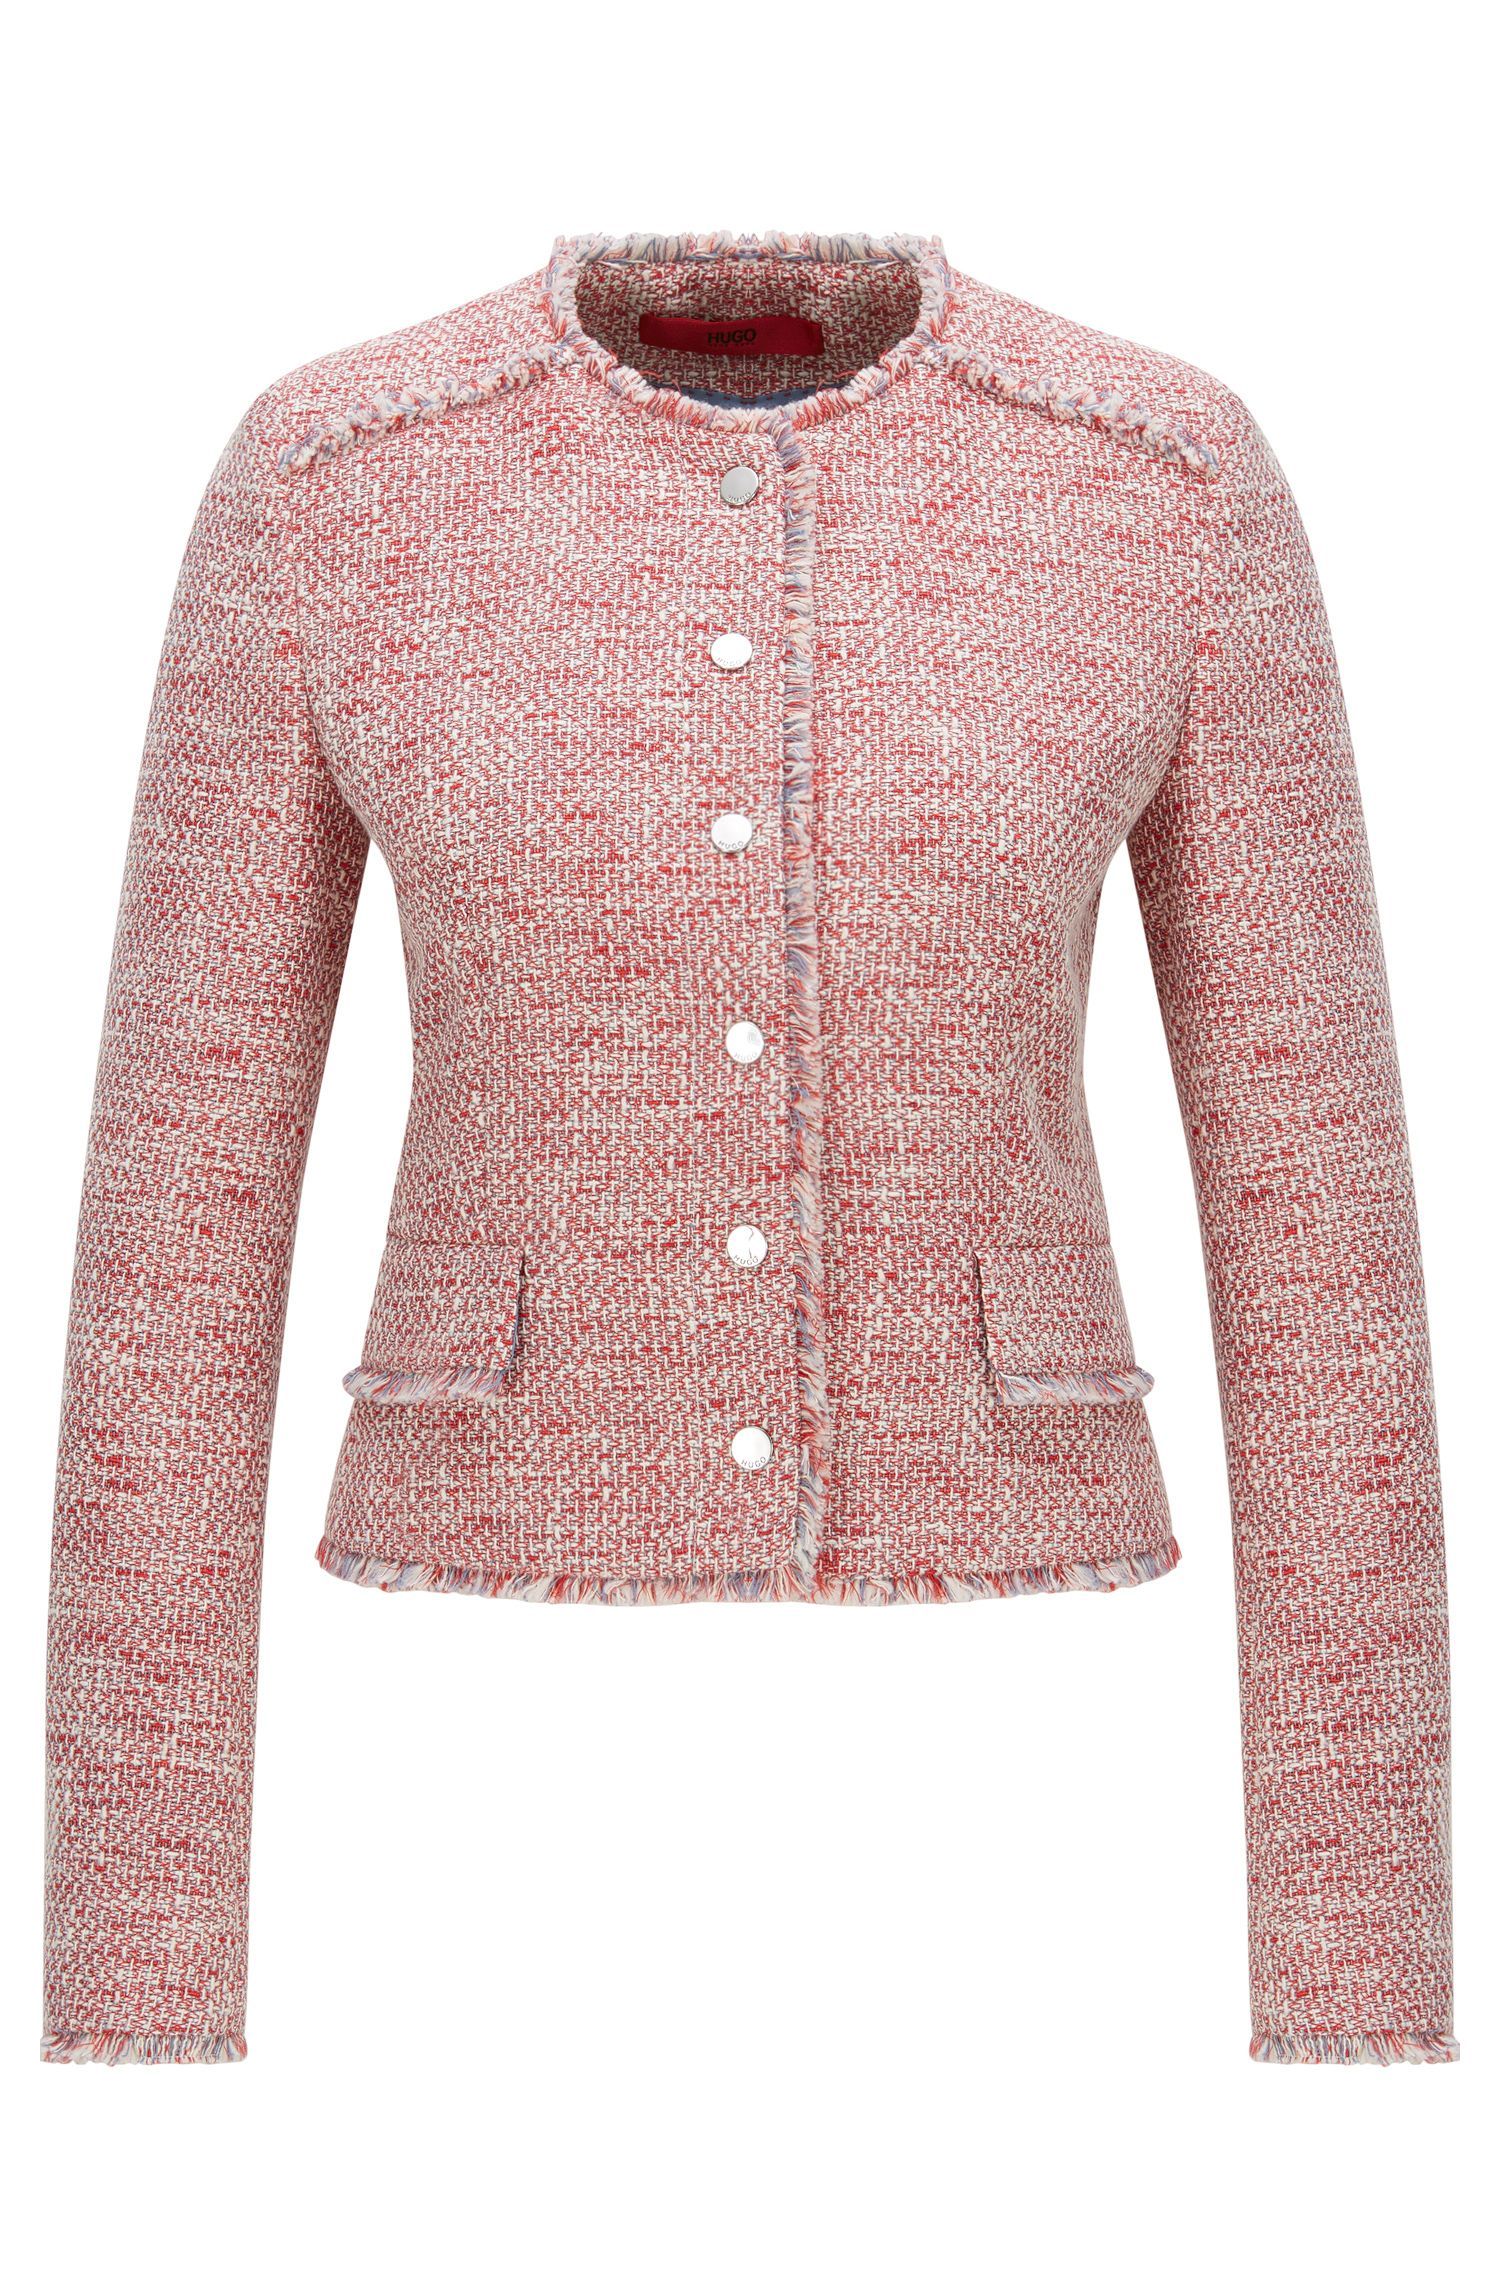 Veste Regular Fit en tweed de coton mélangé